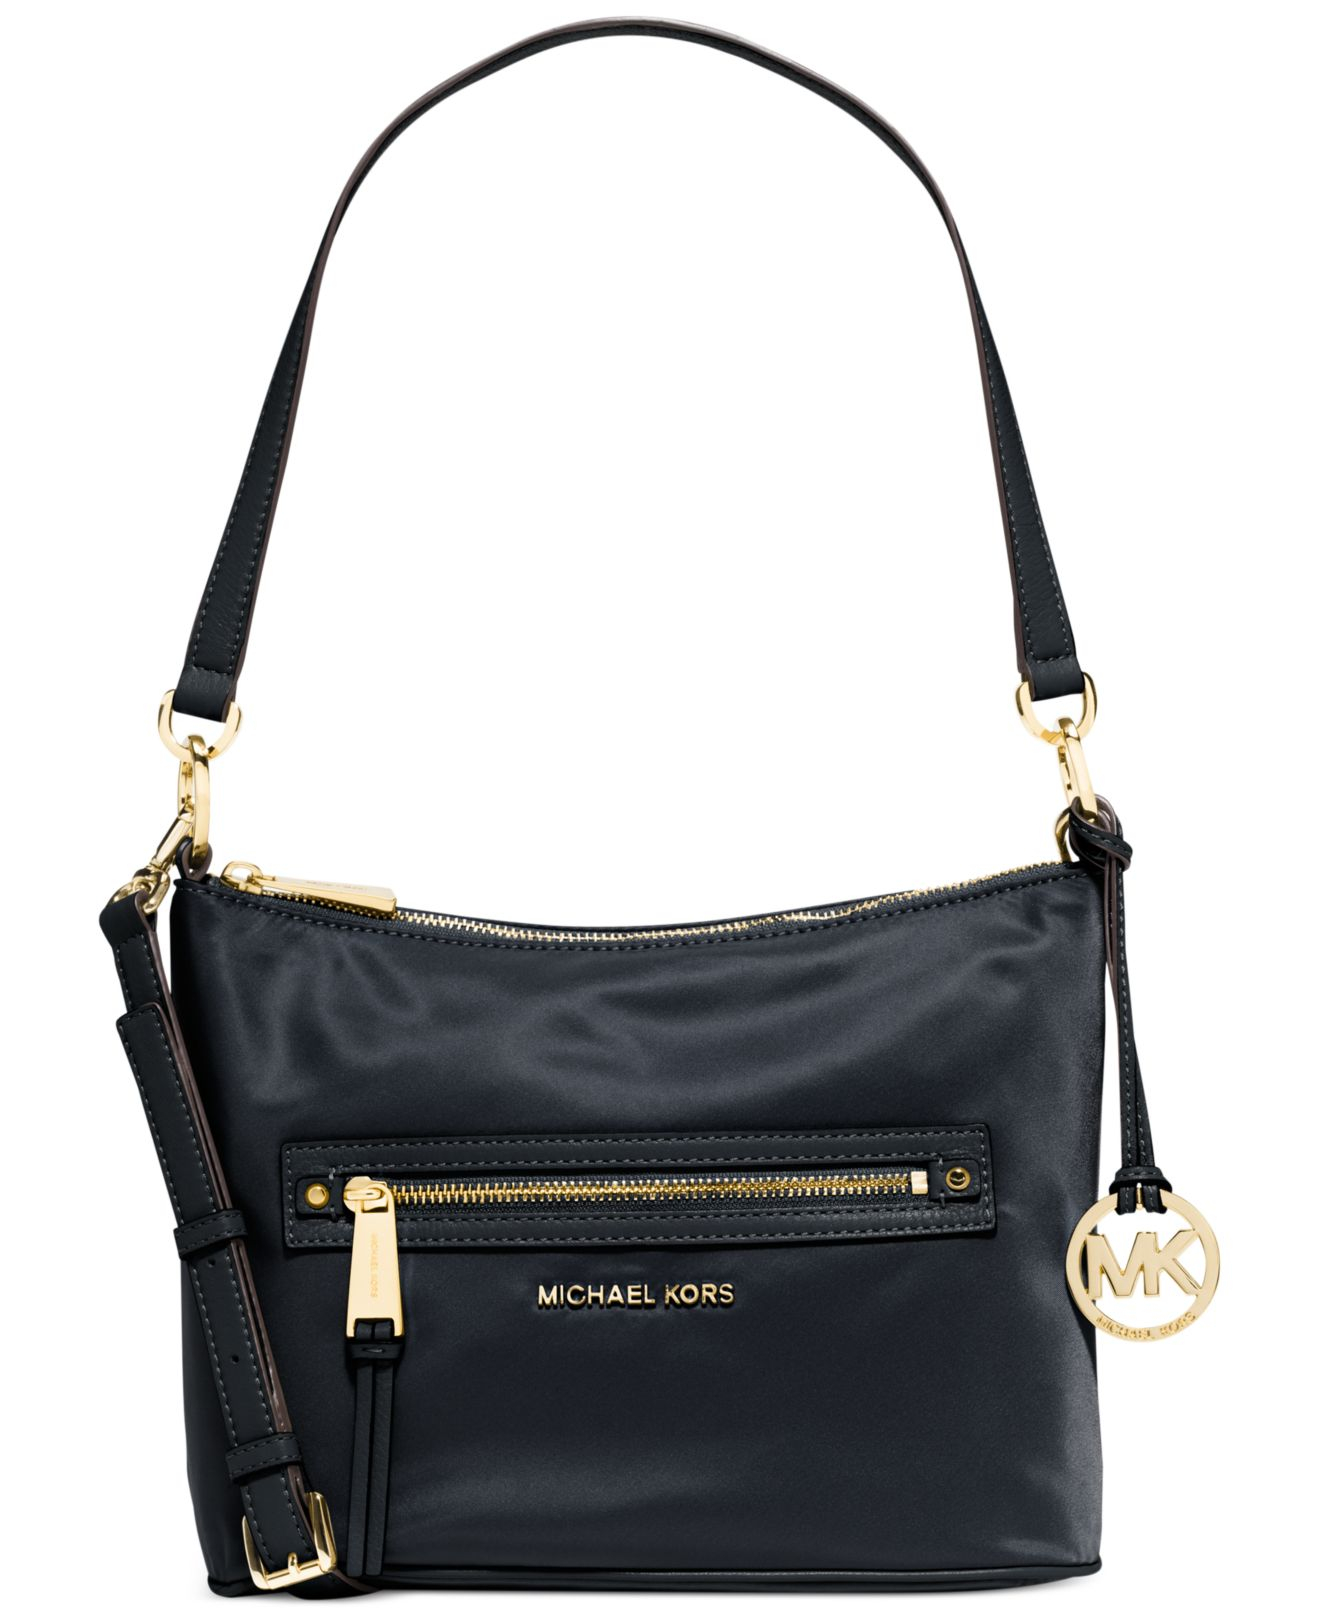 Michael Kors handbags Clearance 75% OFF - Cheap Michael Kors Handbags,watches,wallets, bags,Purses,shoes,sunglasses,jewelry With Huge Discount Price!Enjoy Fast Shipping And No Tax!